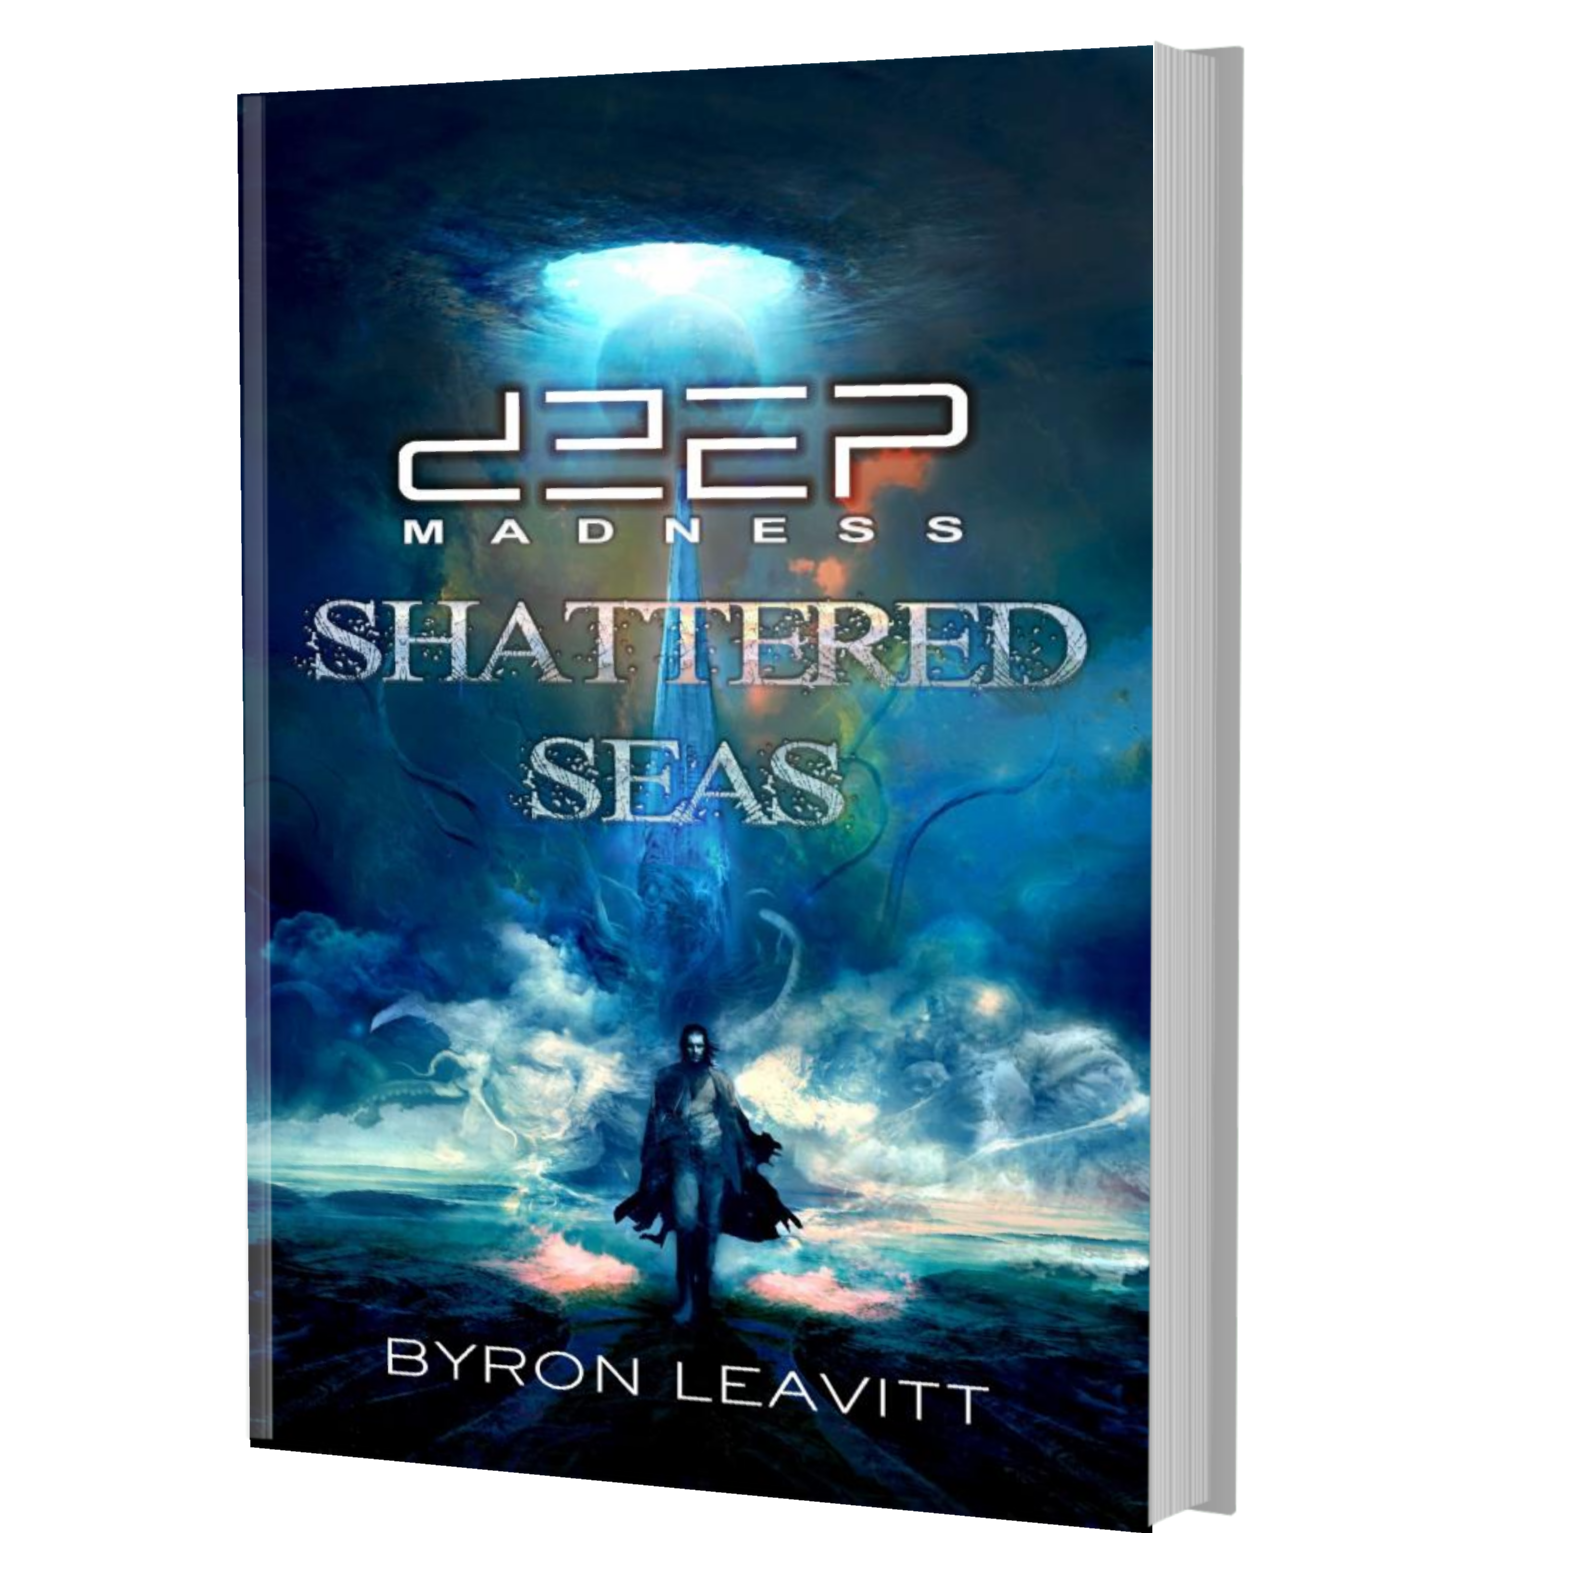 Deep Madness Shattered Seas